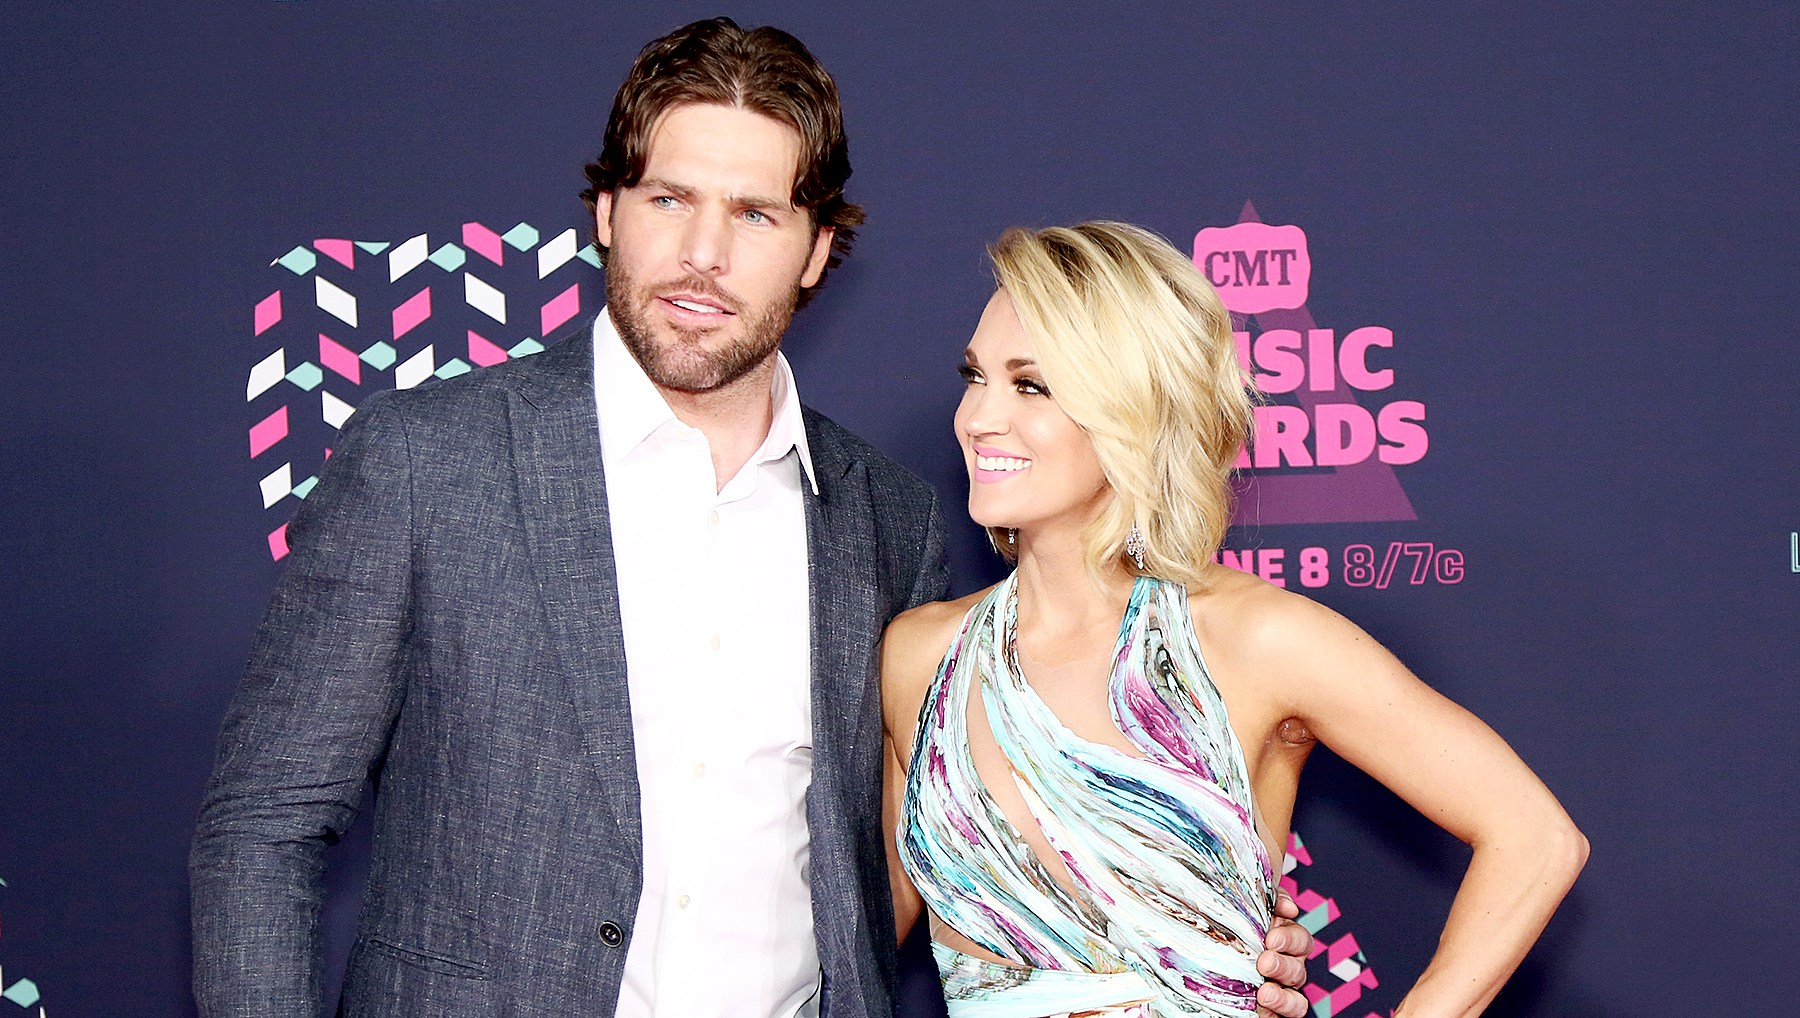 Mike-Fisher-and-Carrie-Underwood